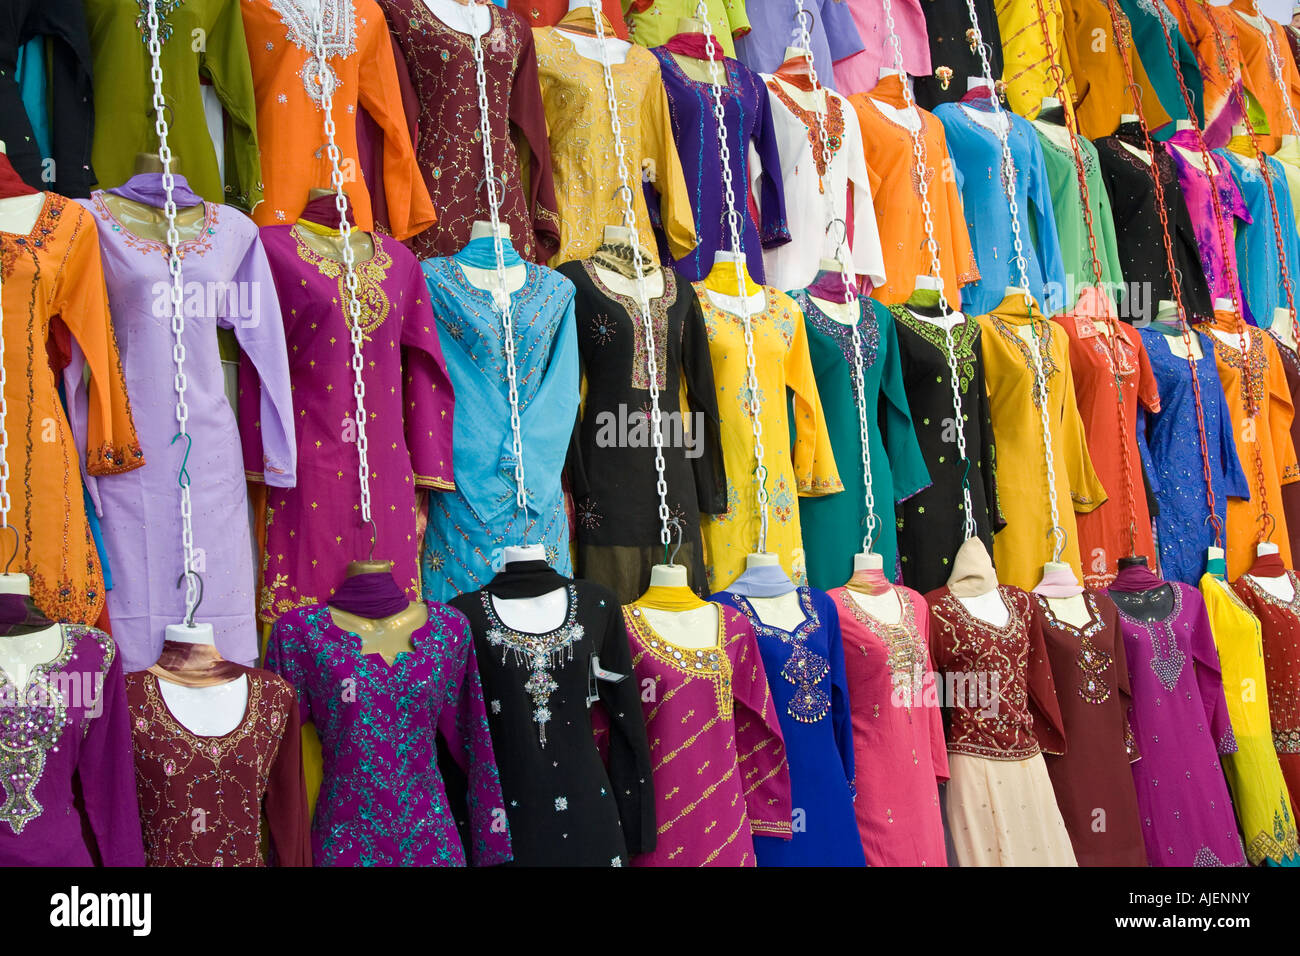 59335dc52d Colourful Sari Clothing Store Little India Singapore - Stock Image